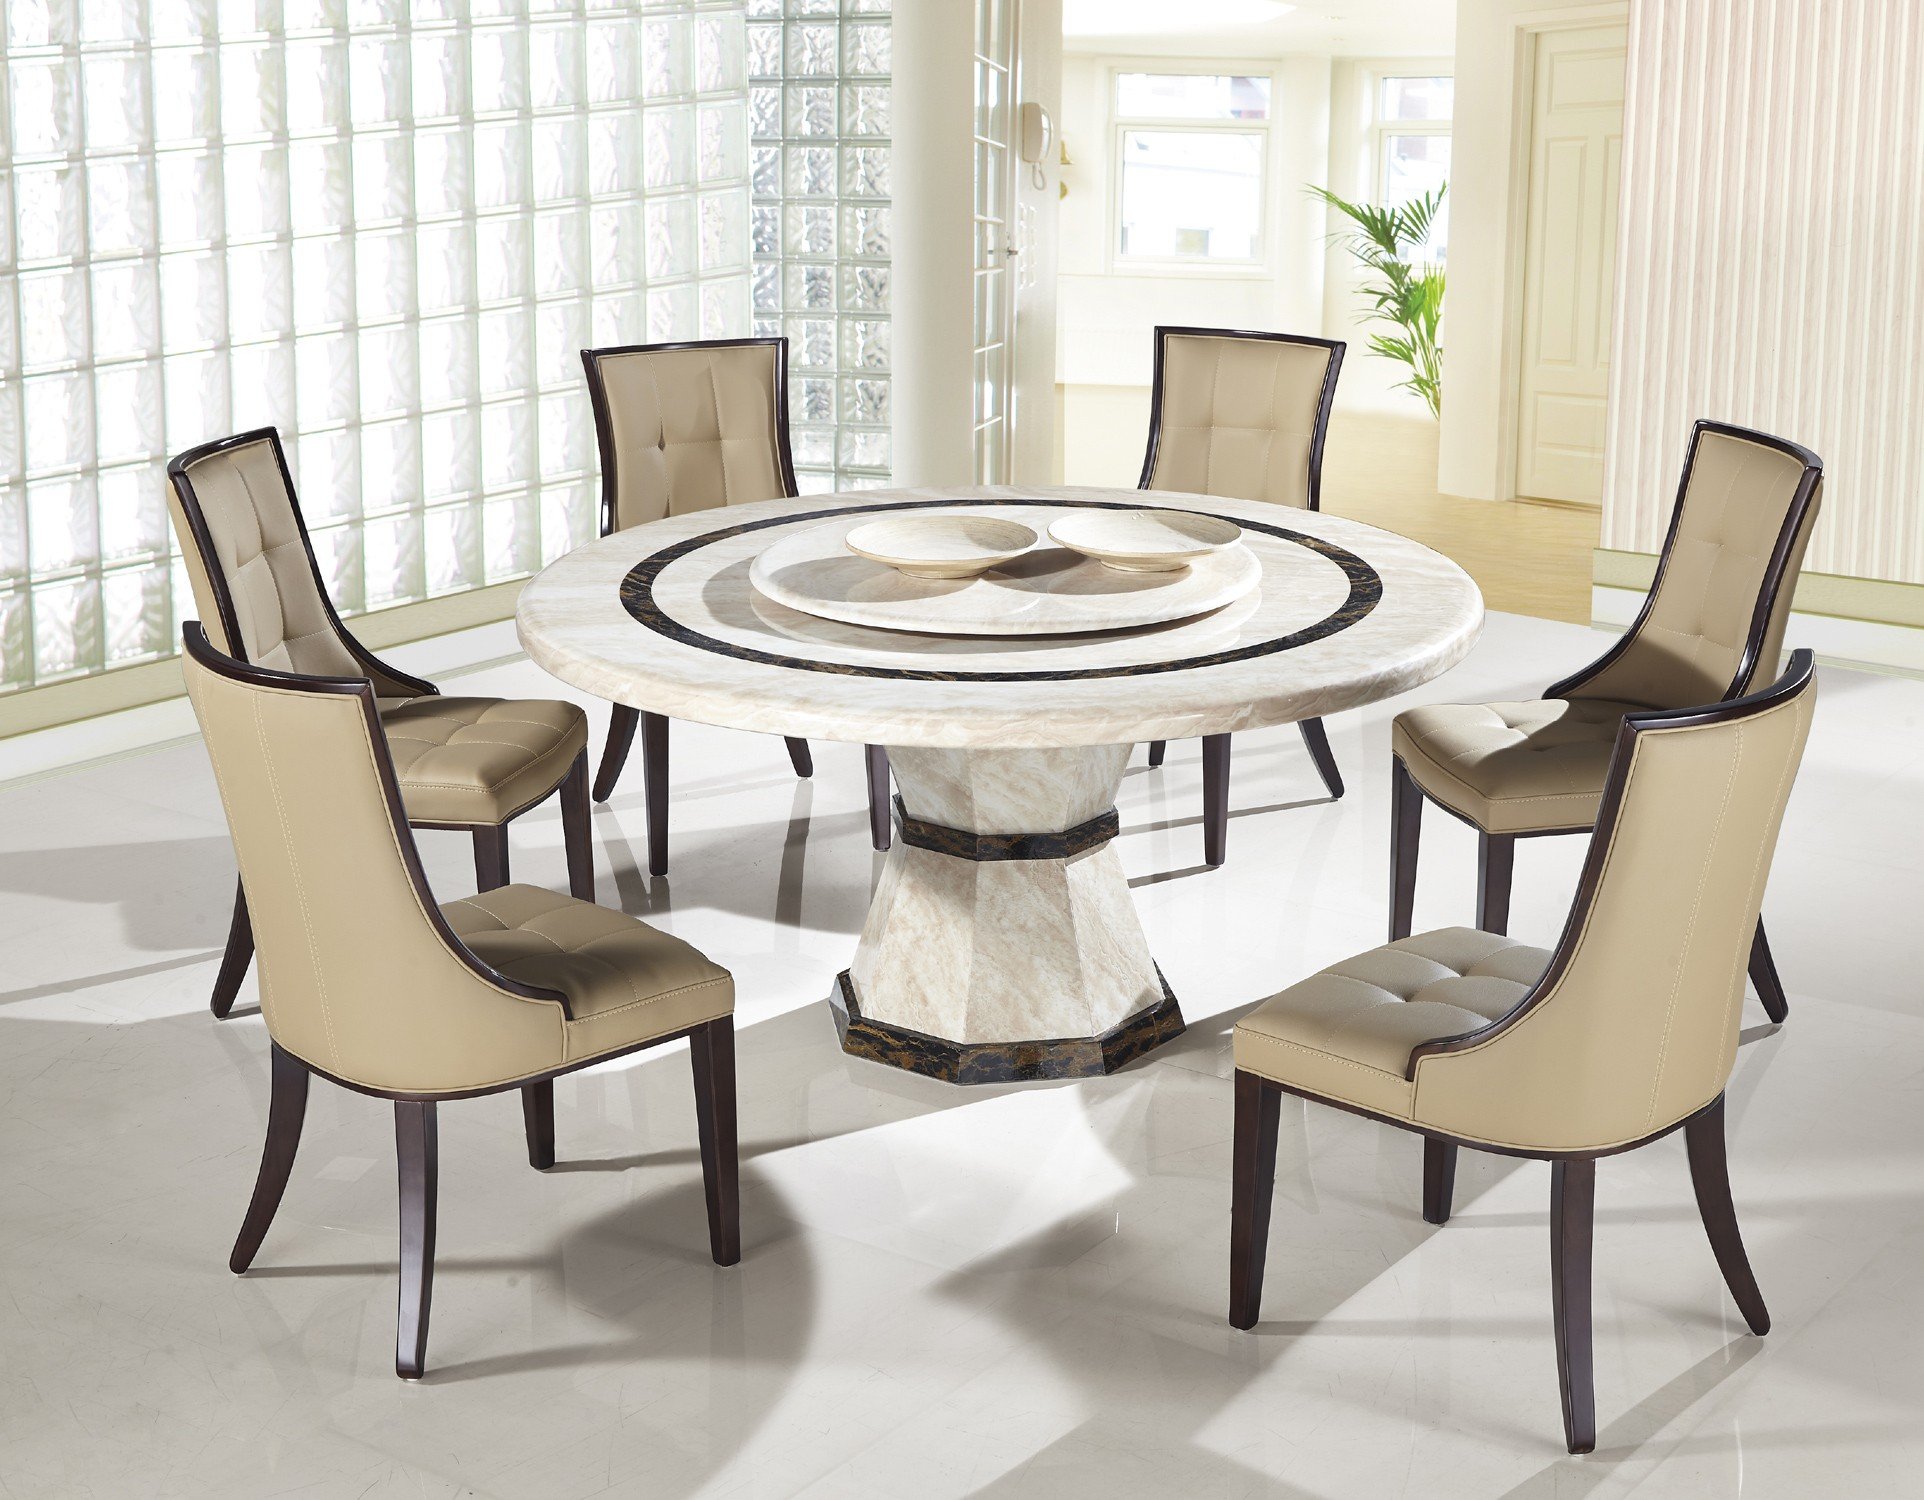 Modern round dining set shop for affordable home for Round dining table set